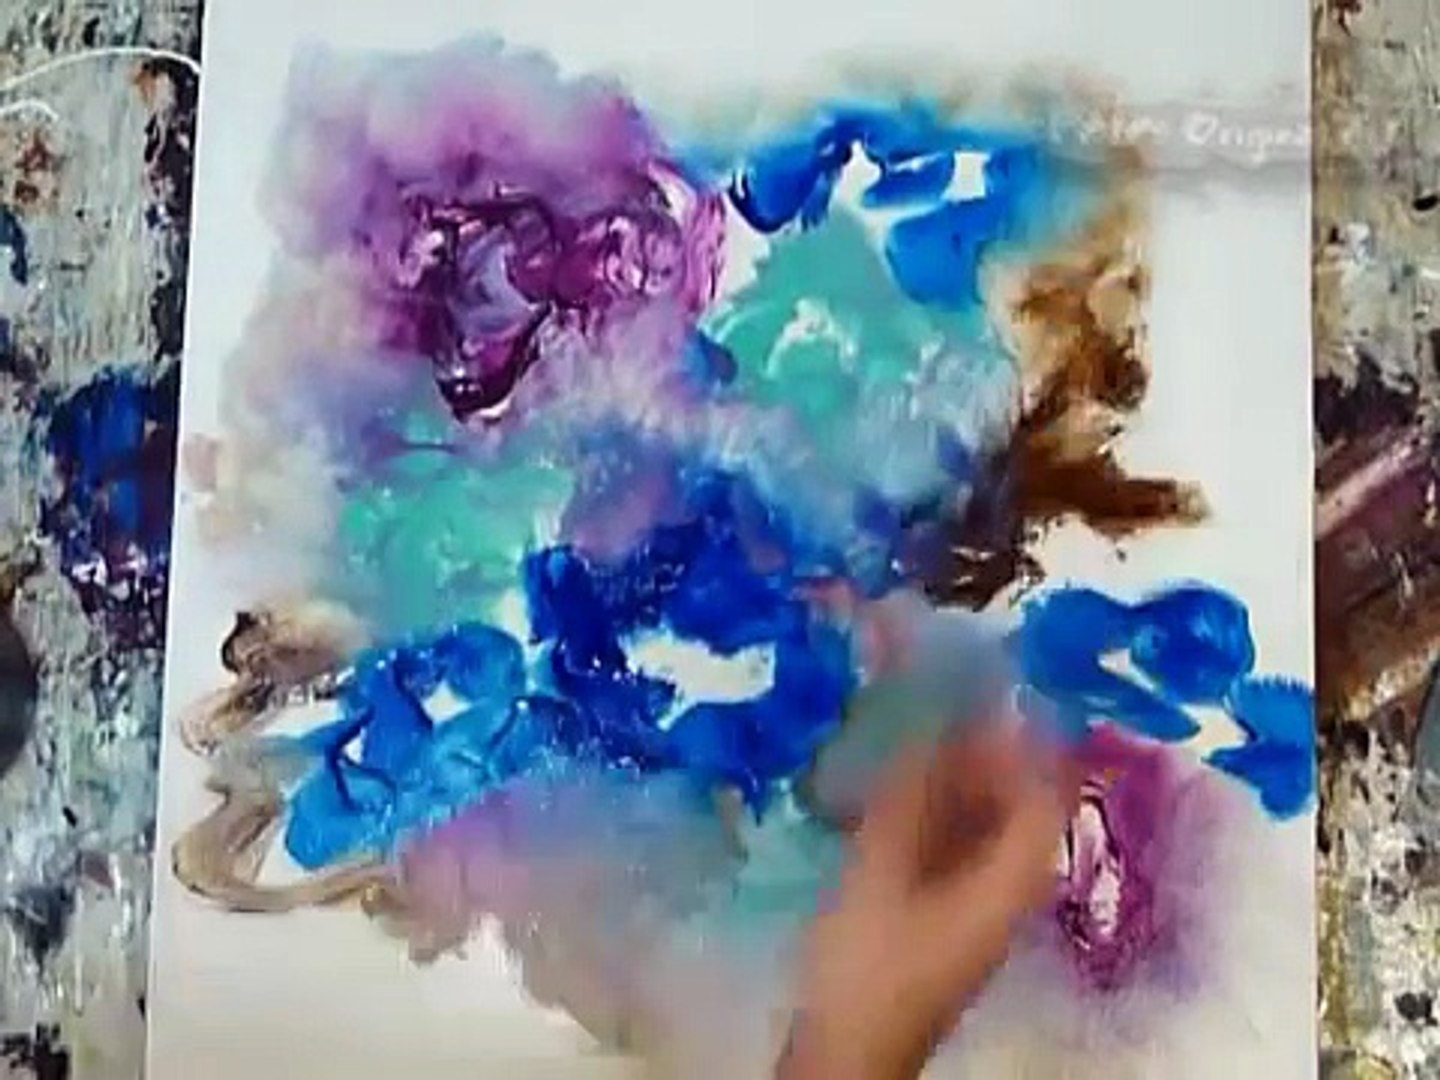 How To Paint Abstract Art Flowers Using Acrylic Paint On Canvas Simple Techniques Modern Look Tips